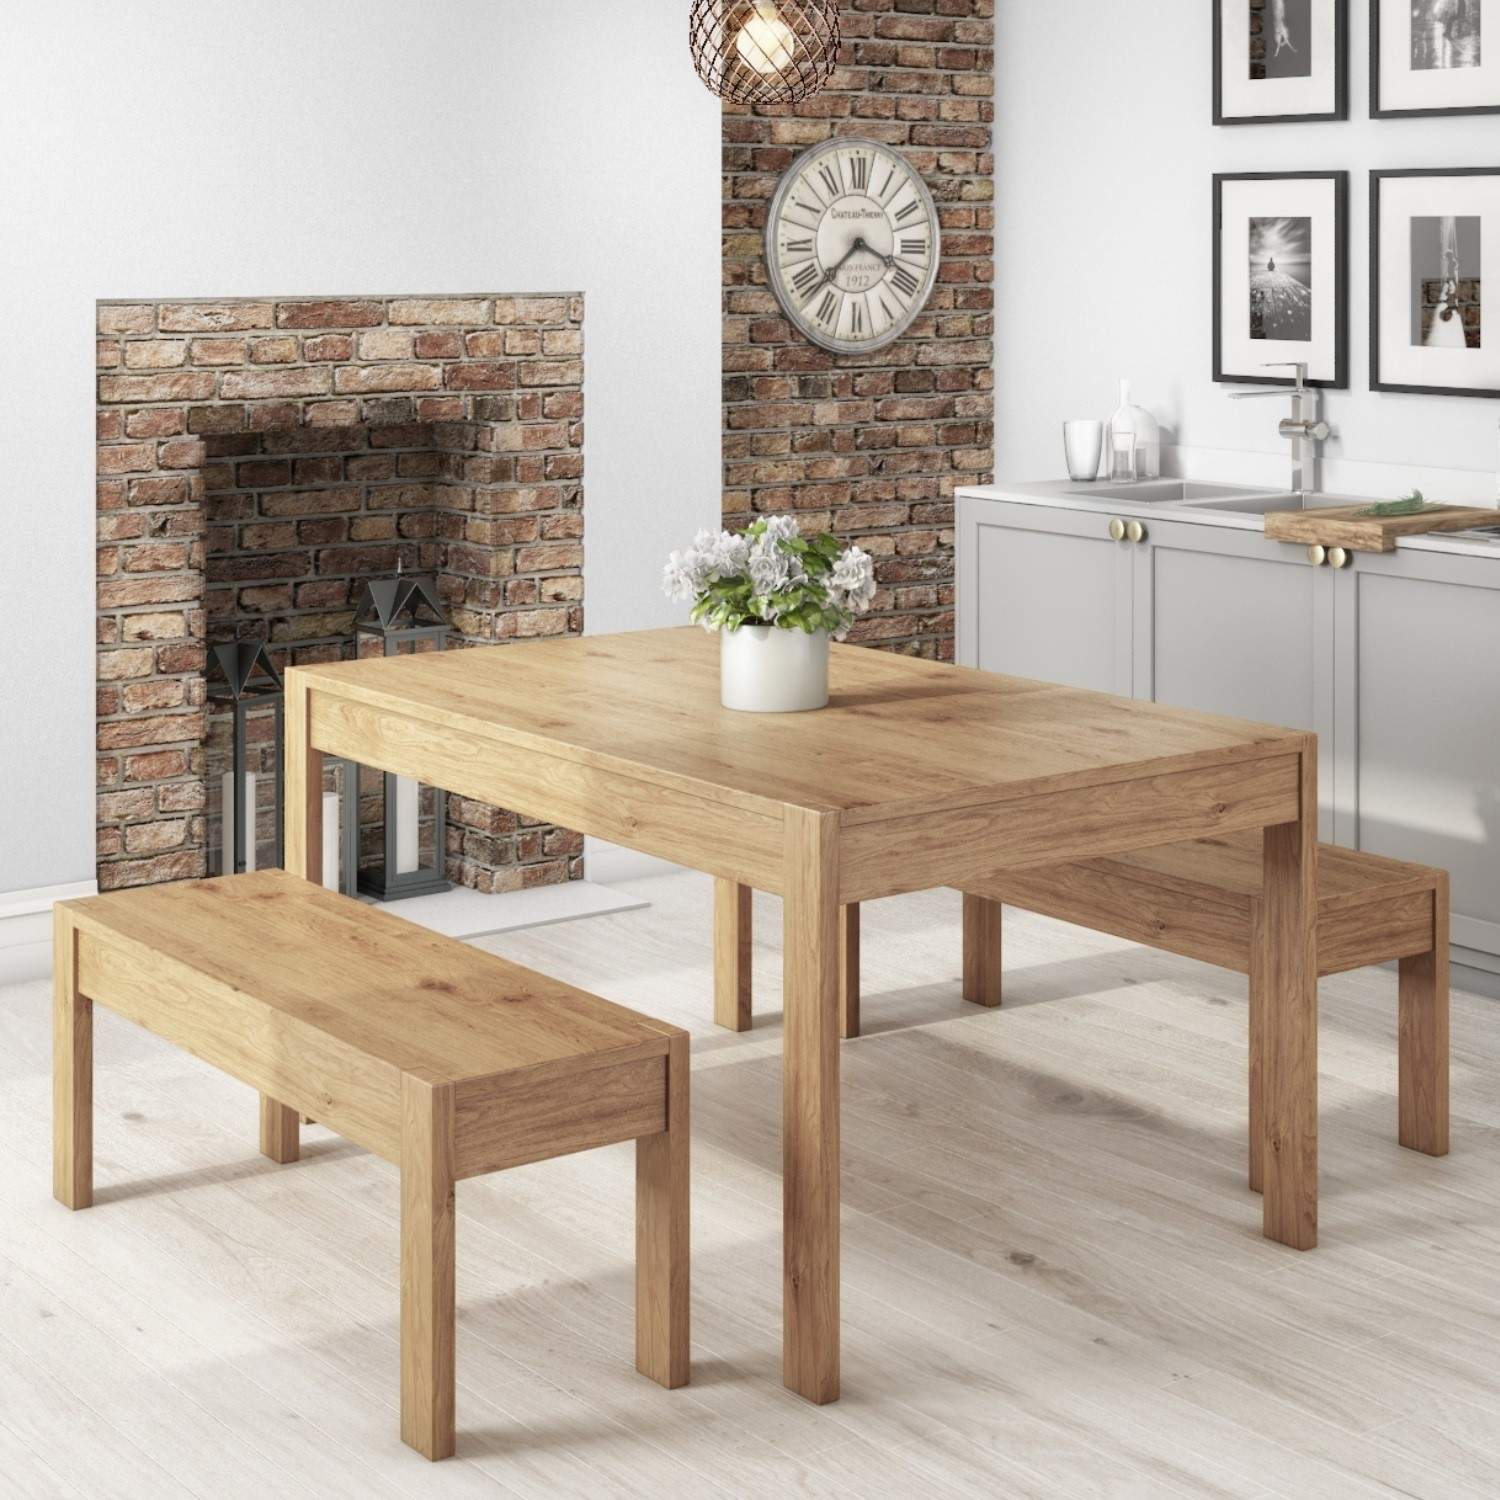 Emerson Solid Pine Rectangle Dining Table with 10 Dining Benches